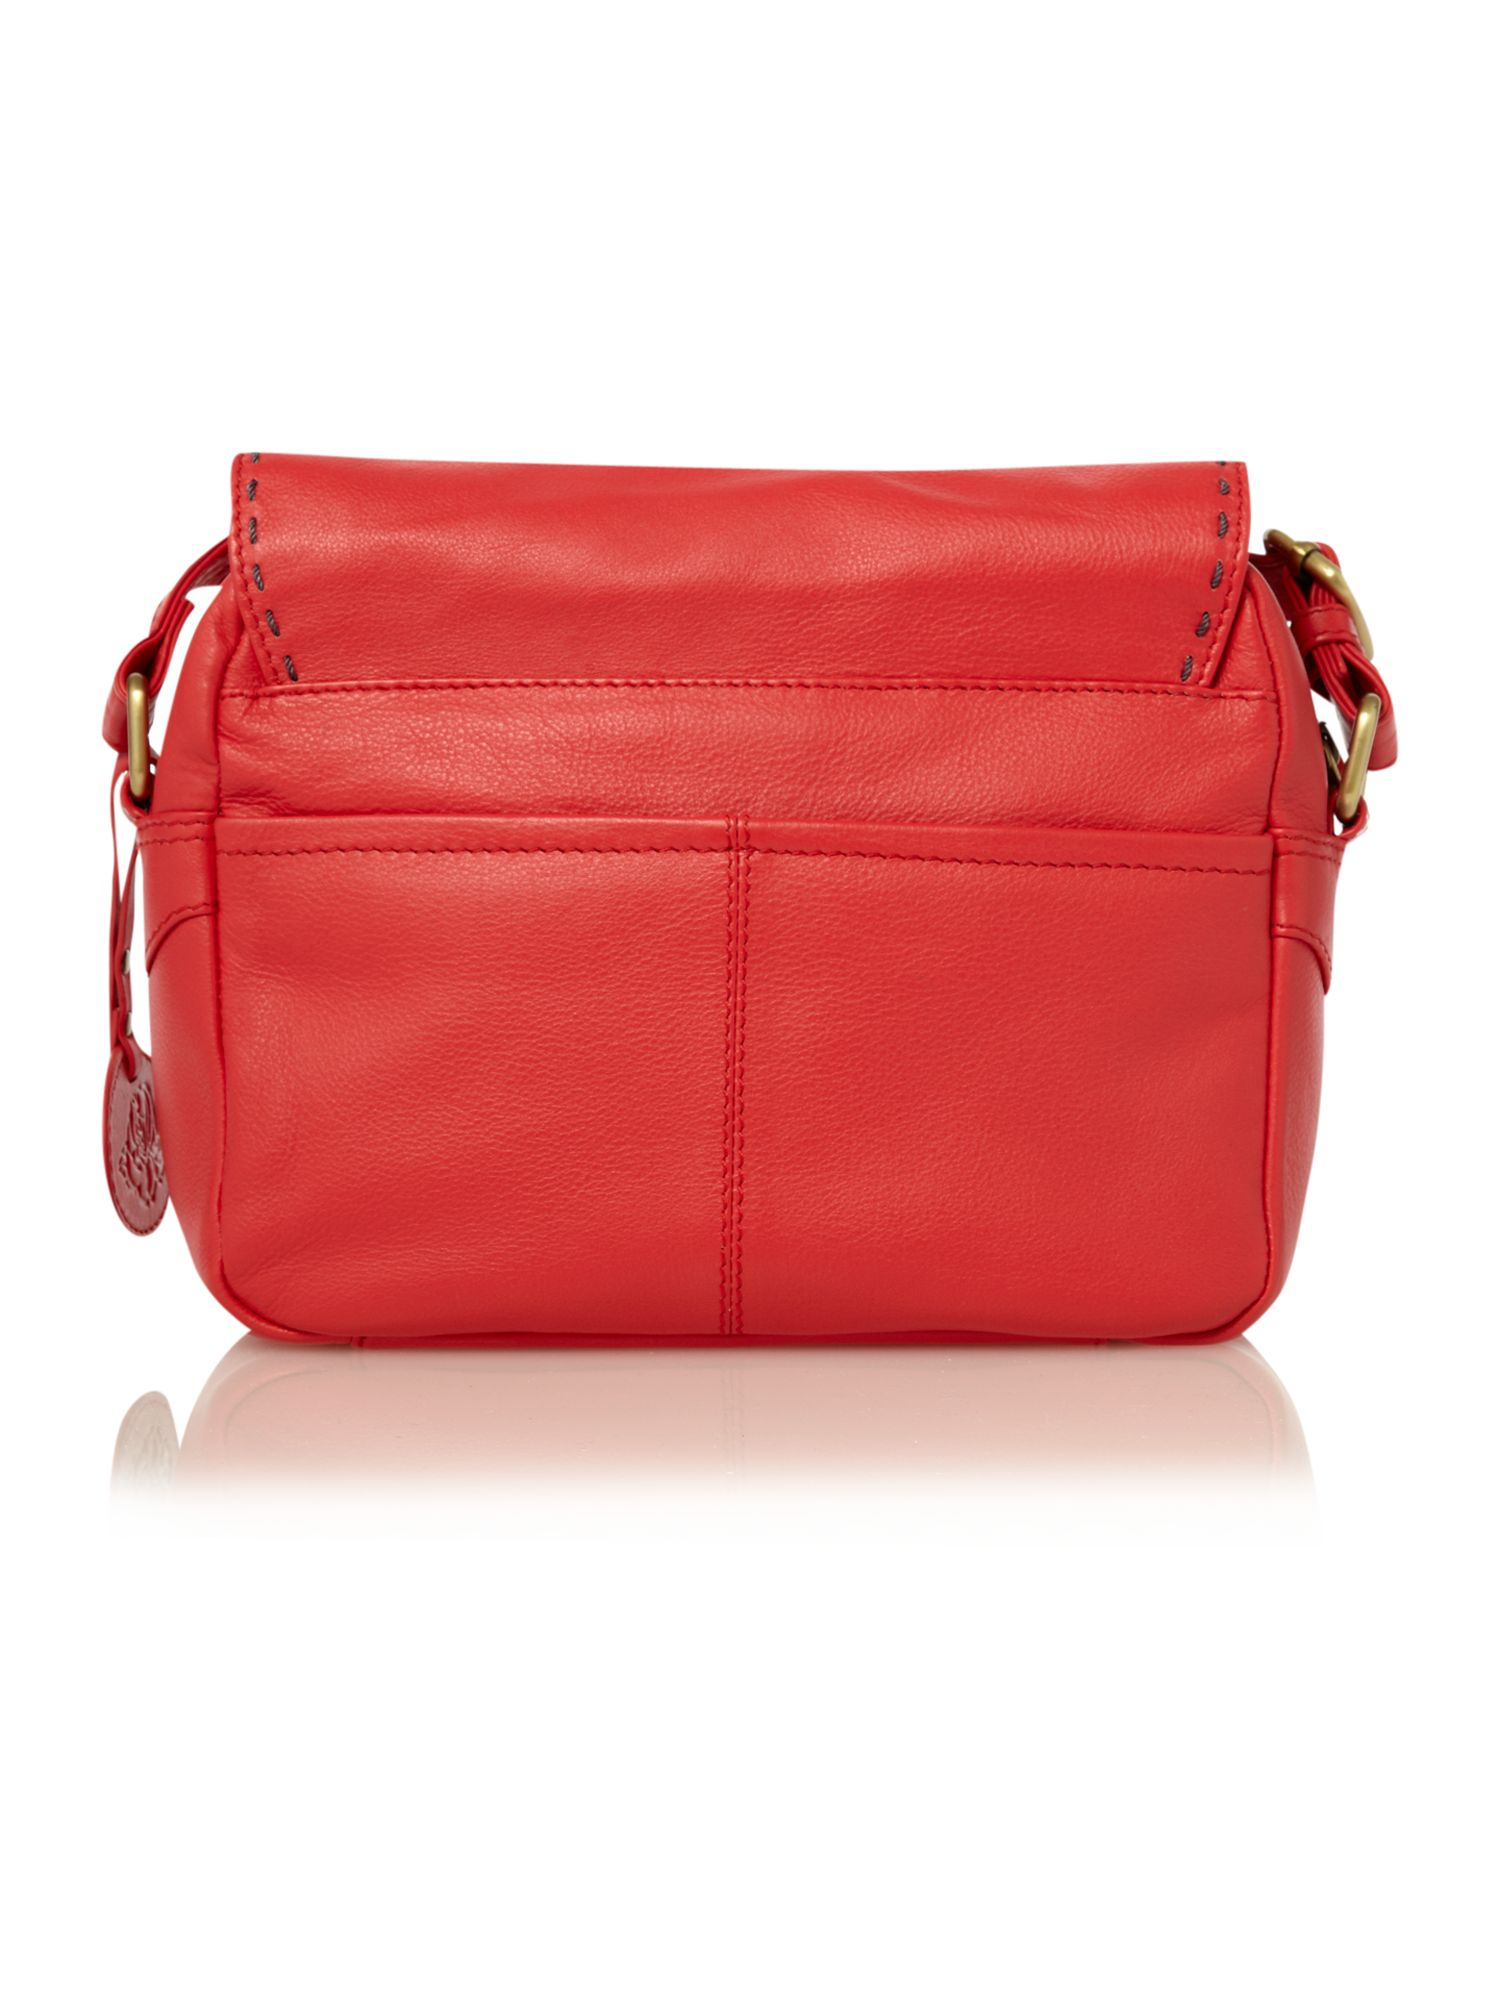 Suffolk cross body satchel bag